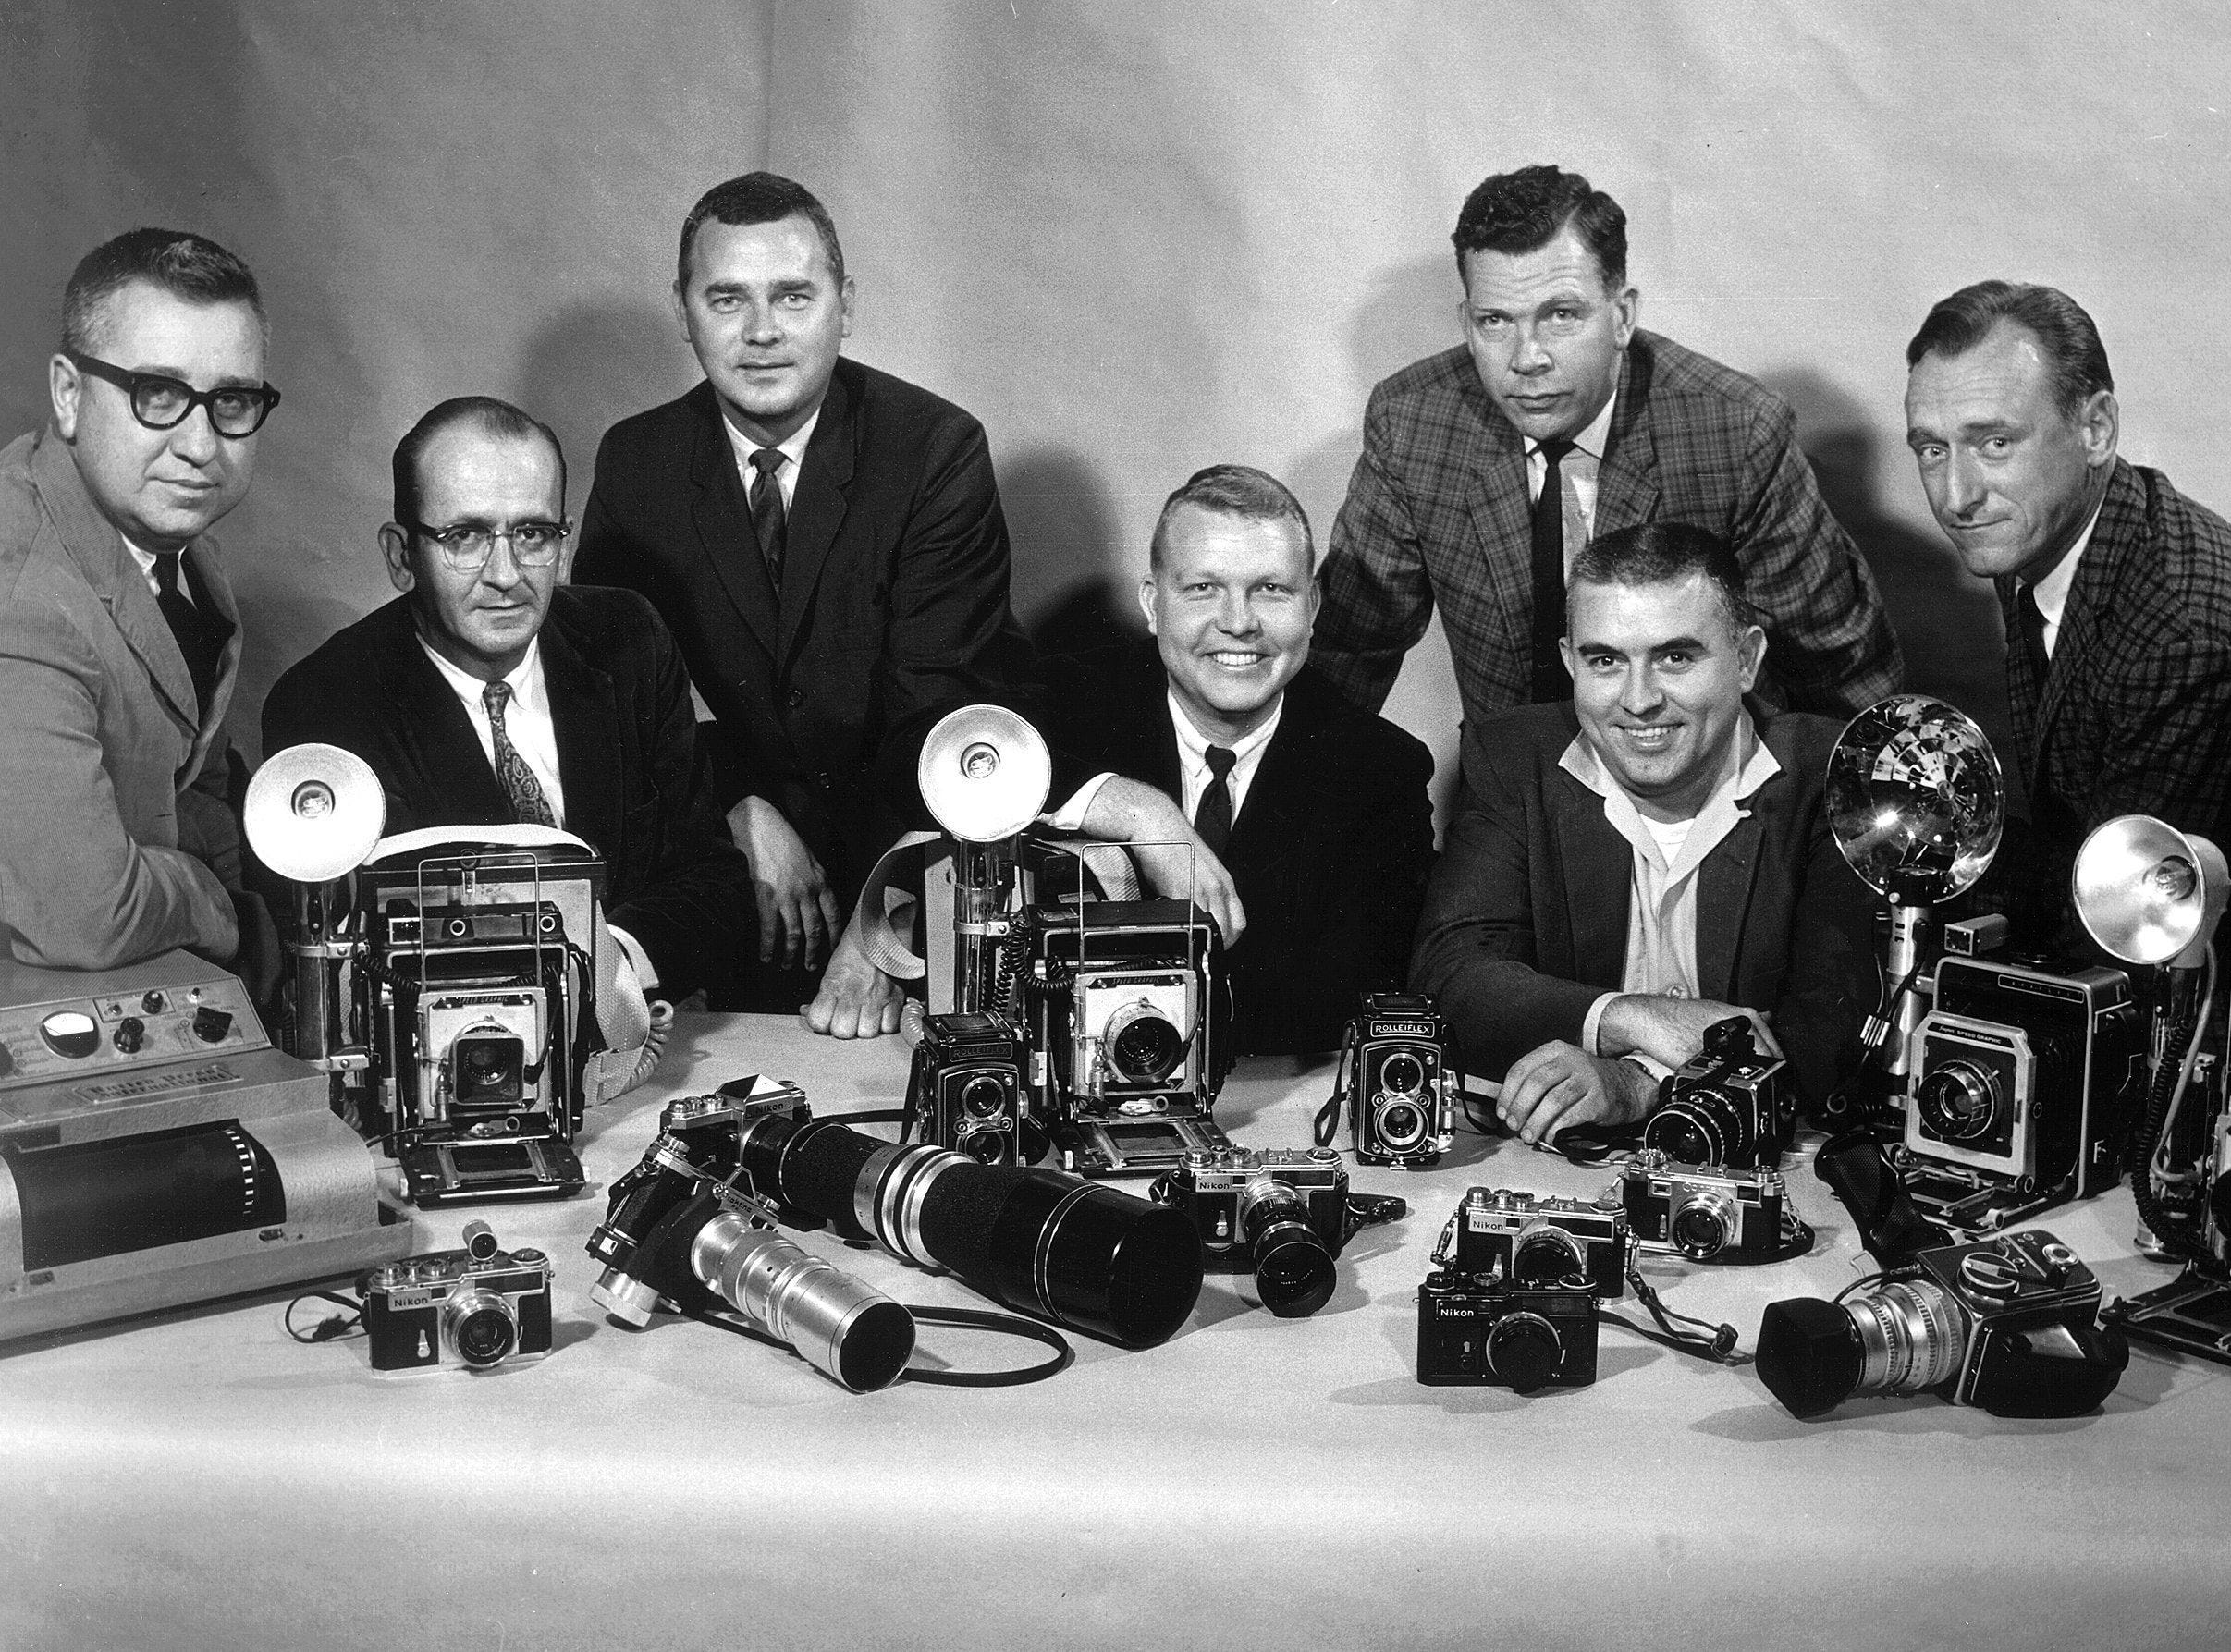 The photo staff of The Commercial Appeal in 1963 consisted of (From Left) Leonard Atkins, who handled telephoto operations, Fred J. Griffith, Barney Sellers, James Shearin, Bob Williams, Wayne Tilson and Charles Nicholas, Chief Photographer. Equipment pictured includes a United Press International telephoto transmitter, 4 x 5 Speed Graphic cameras, assorted models of Nikon 35mm cameras, Rolleiflex cameras and Hassleblad cameras.